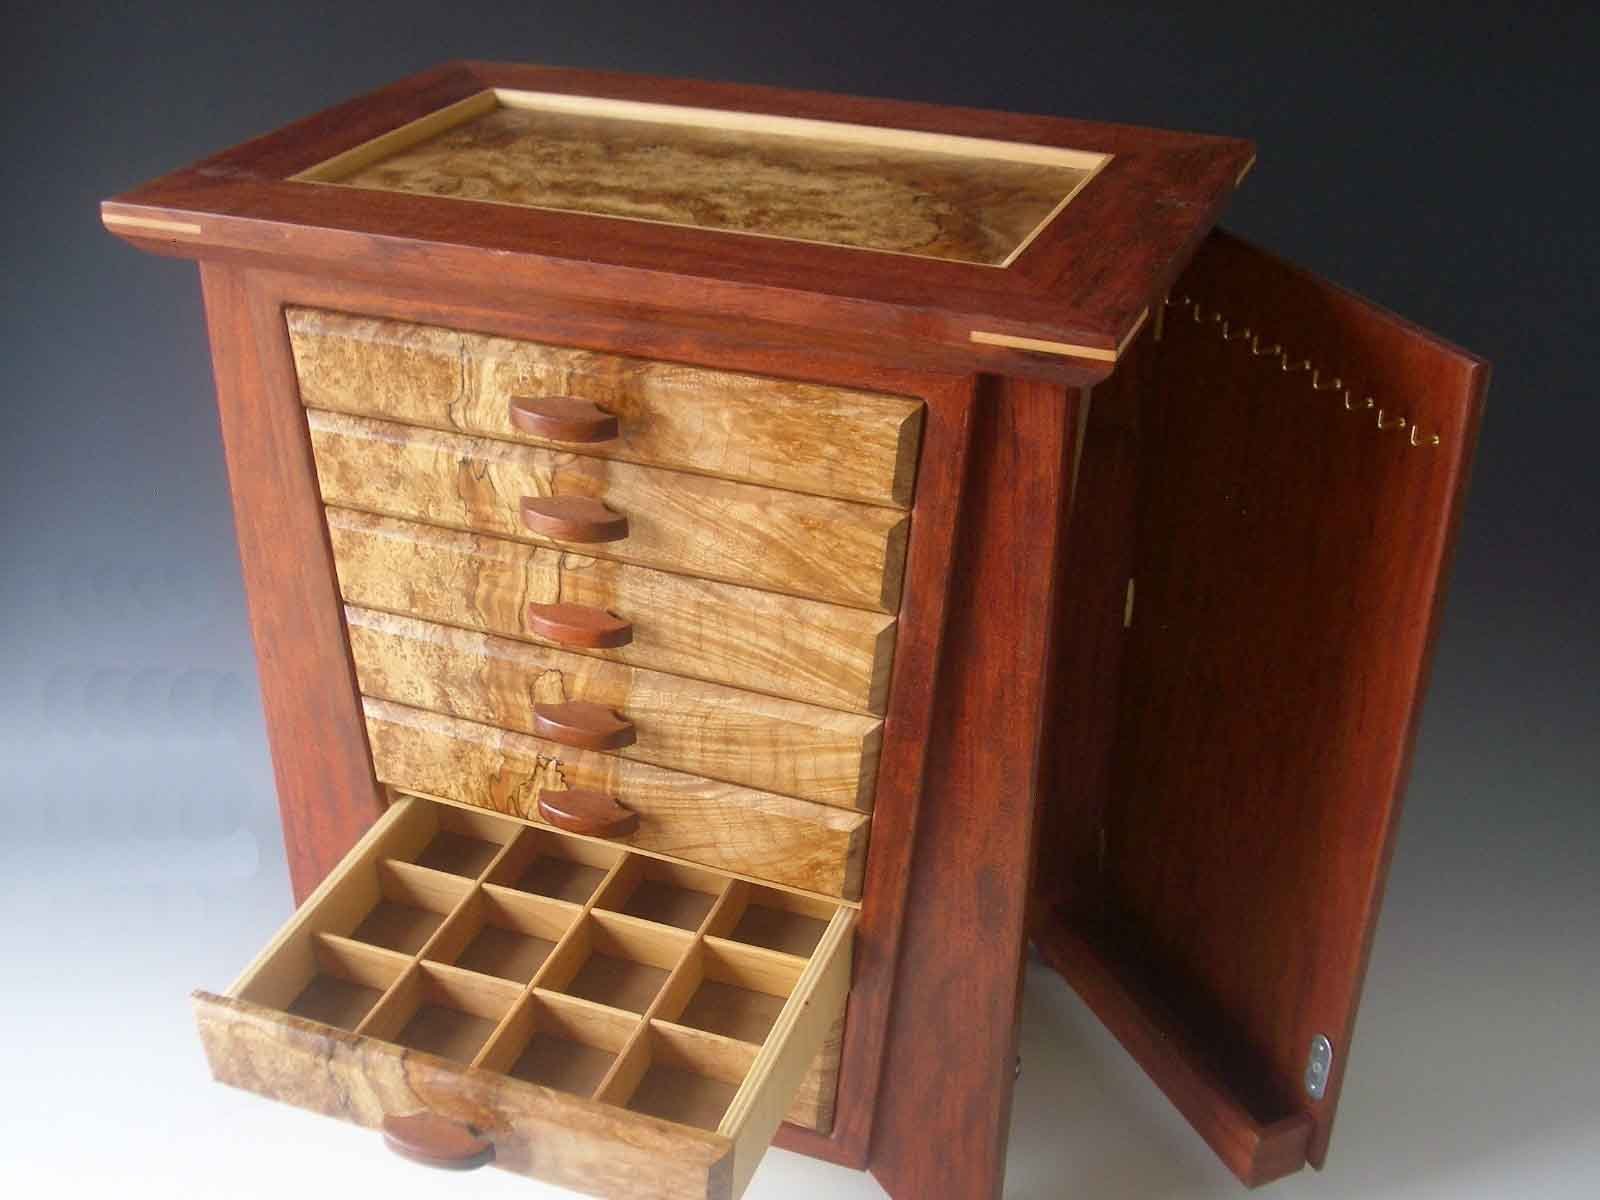 Making Jewelry Boxes Woodworking